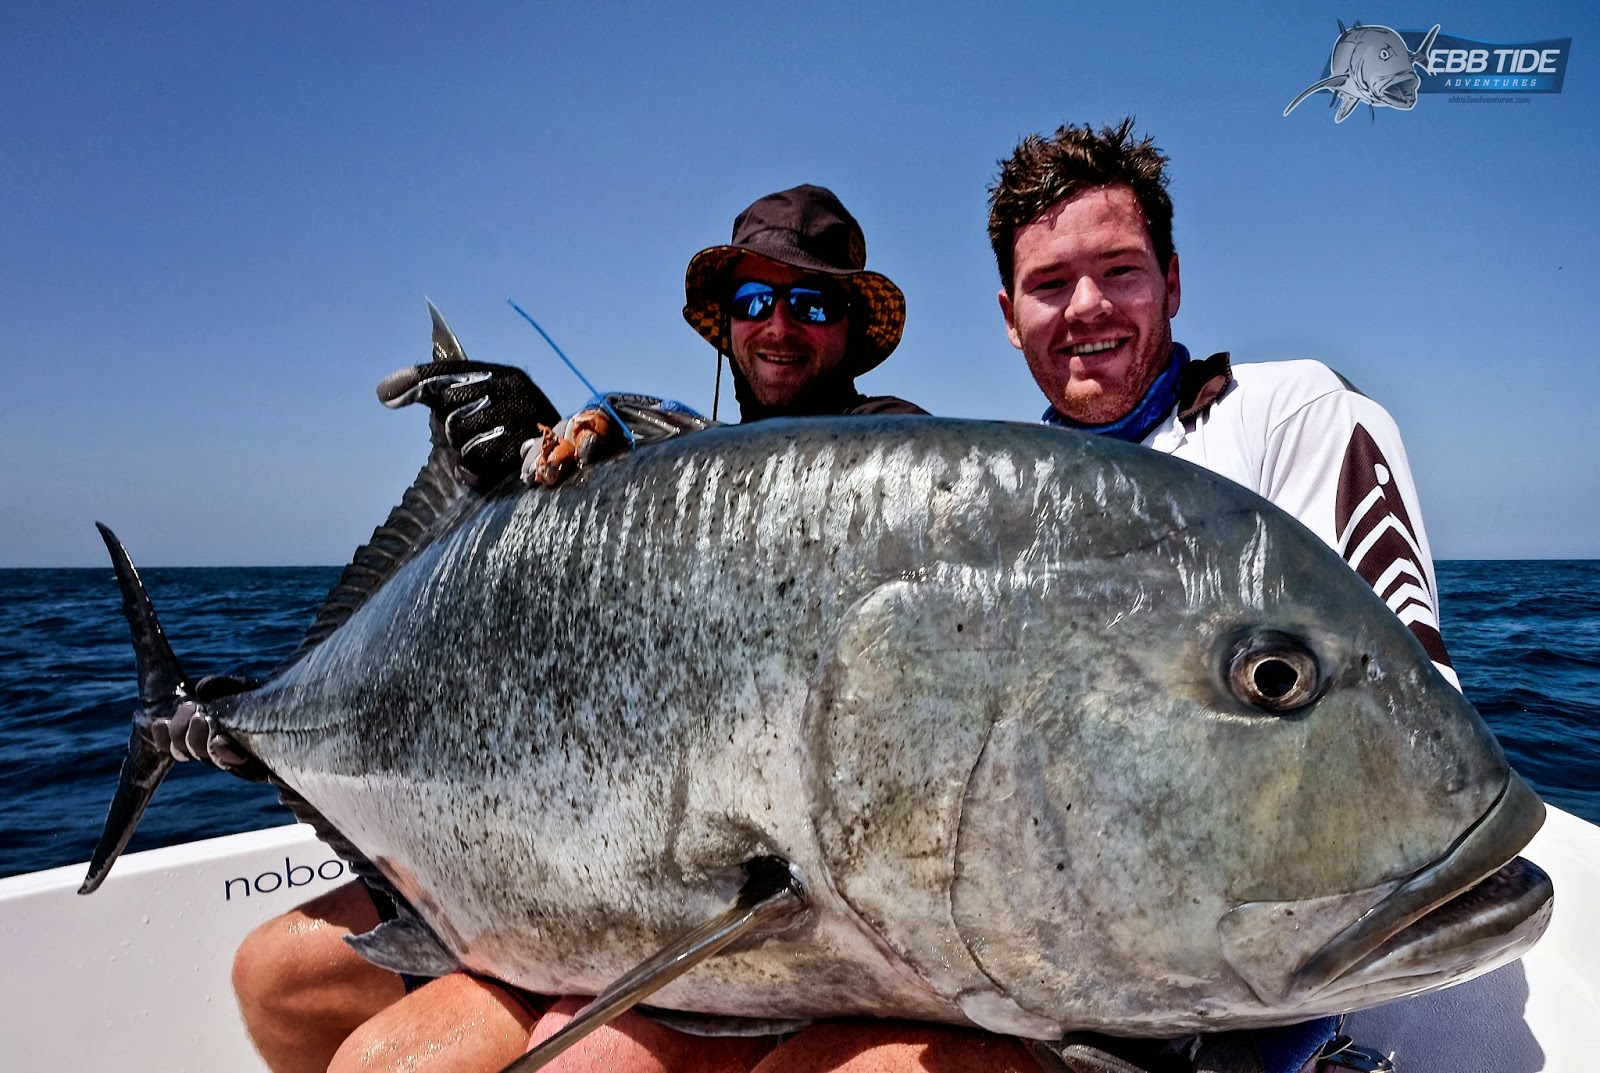 Ebb tide tackle the blog catch and release a guide to for Big fish tackle